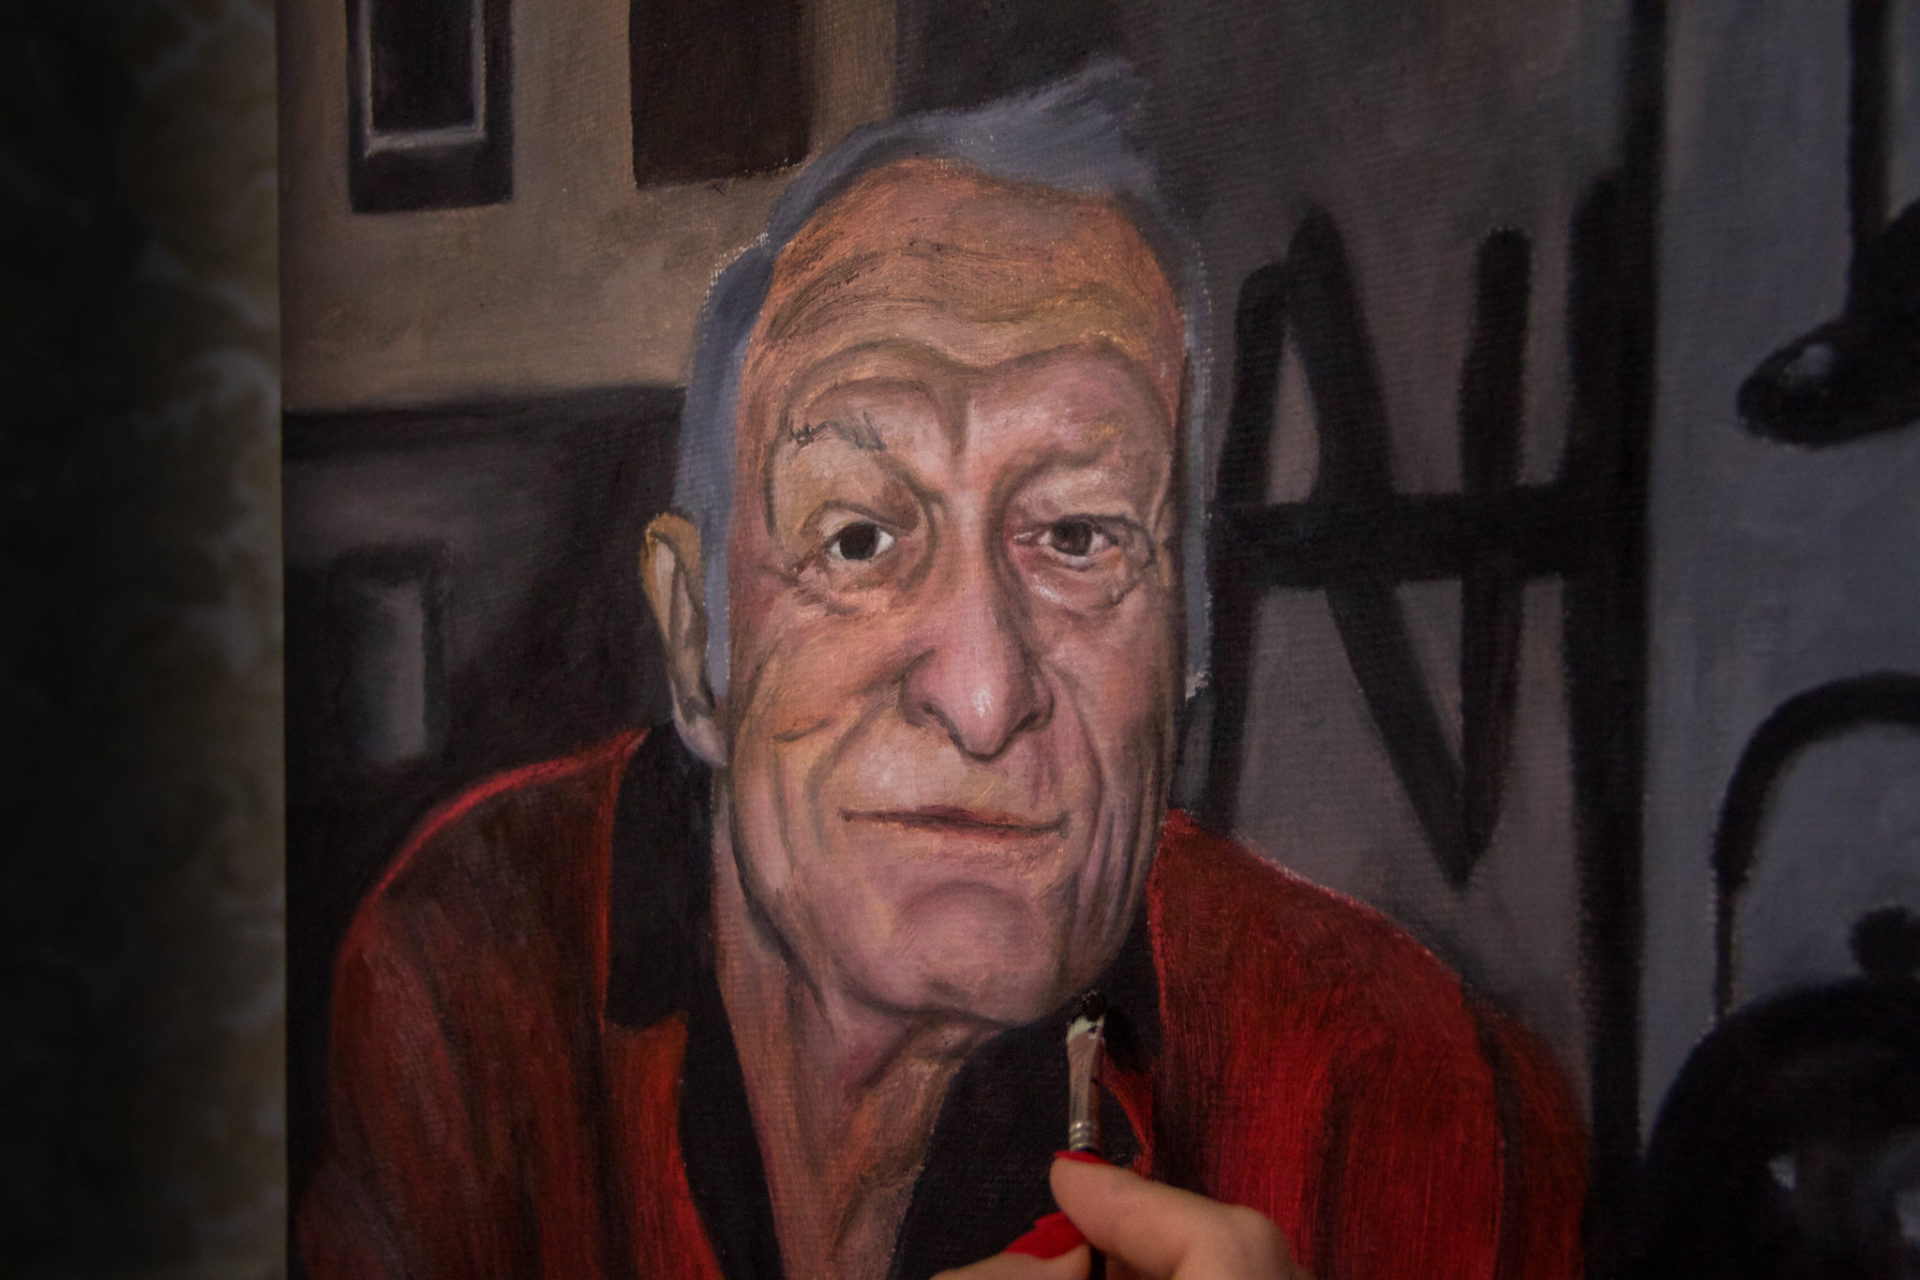 Oil portrait on canvas in progress — Hugh Hefner